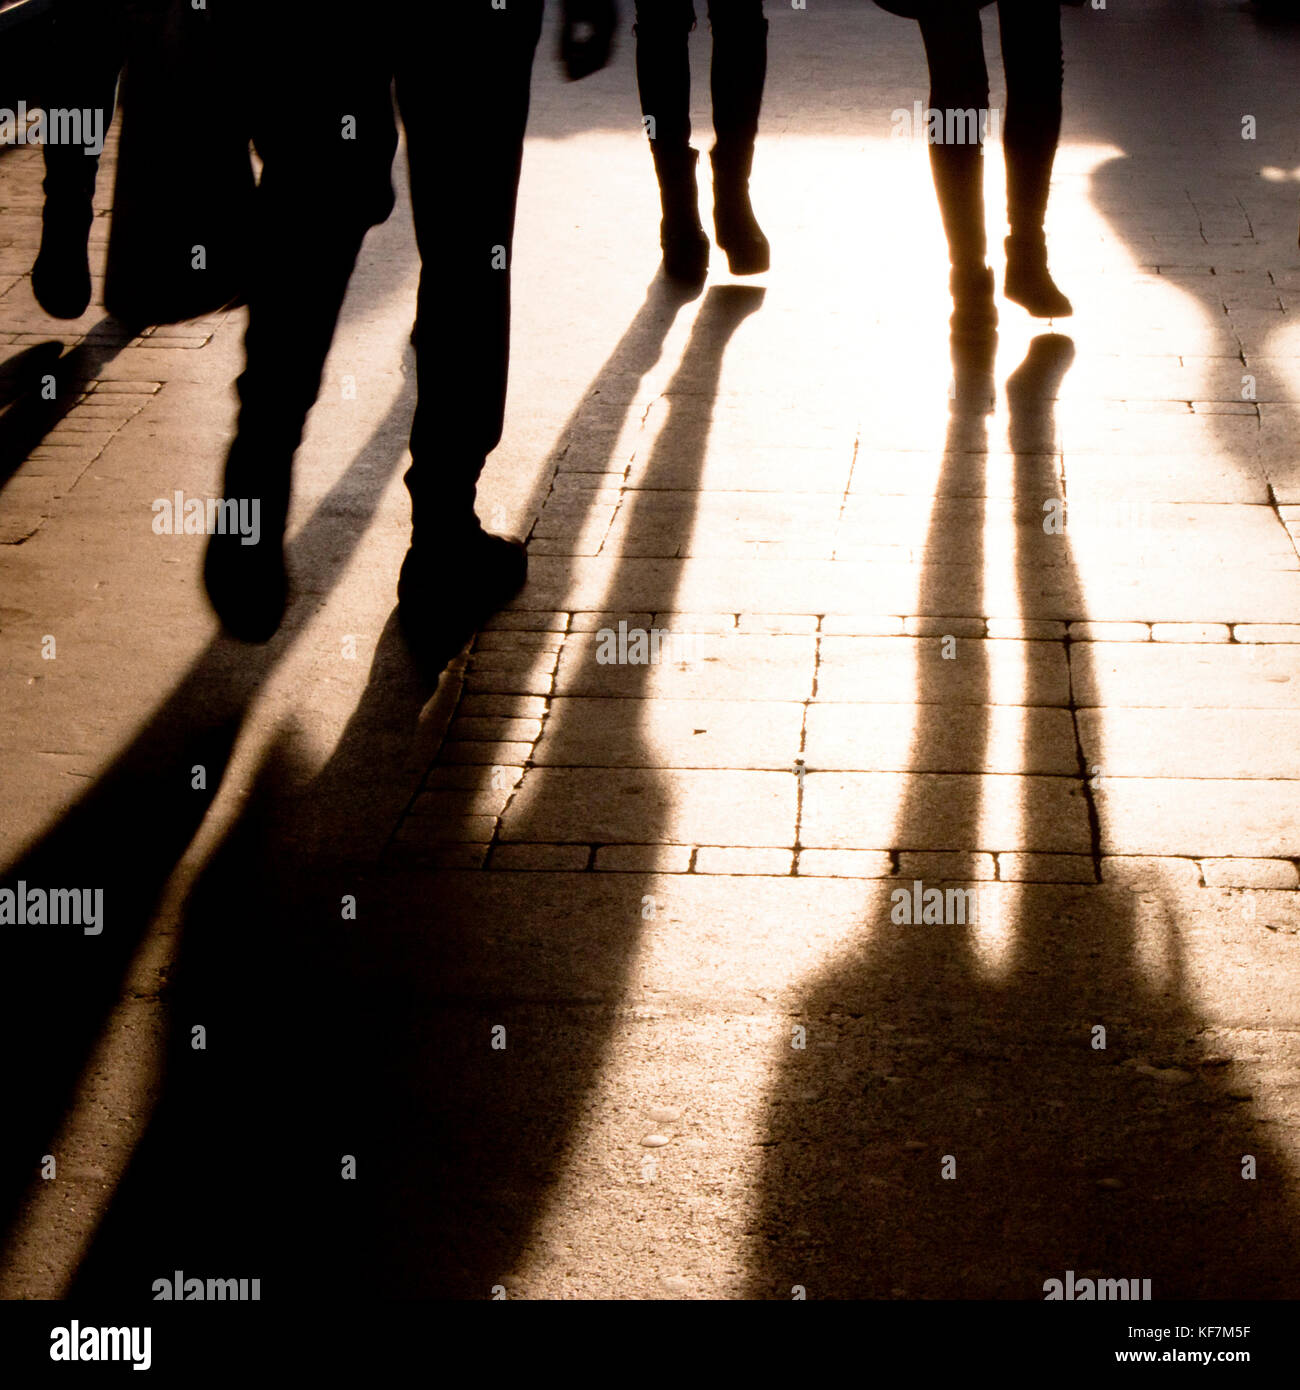 Blurry shadow and silhouette of people walking on the city street Stock  Photo - Alamy